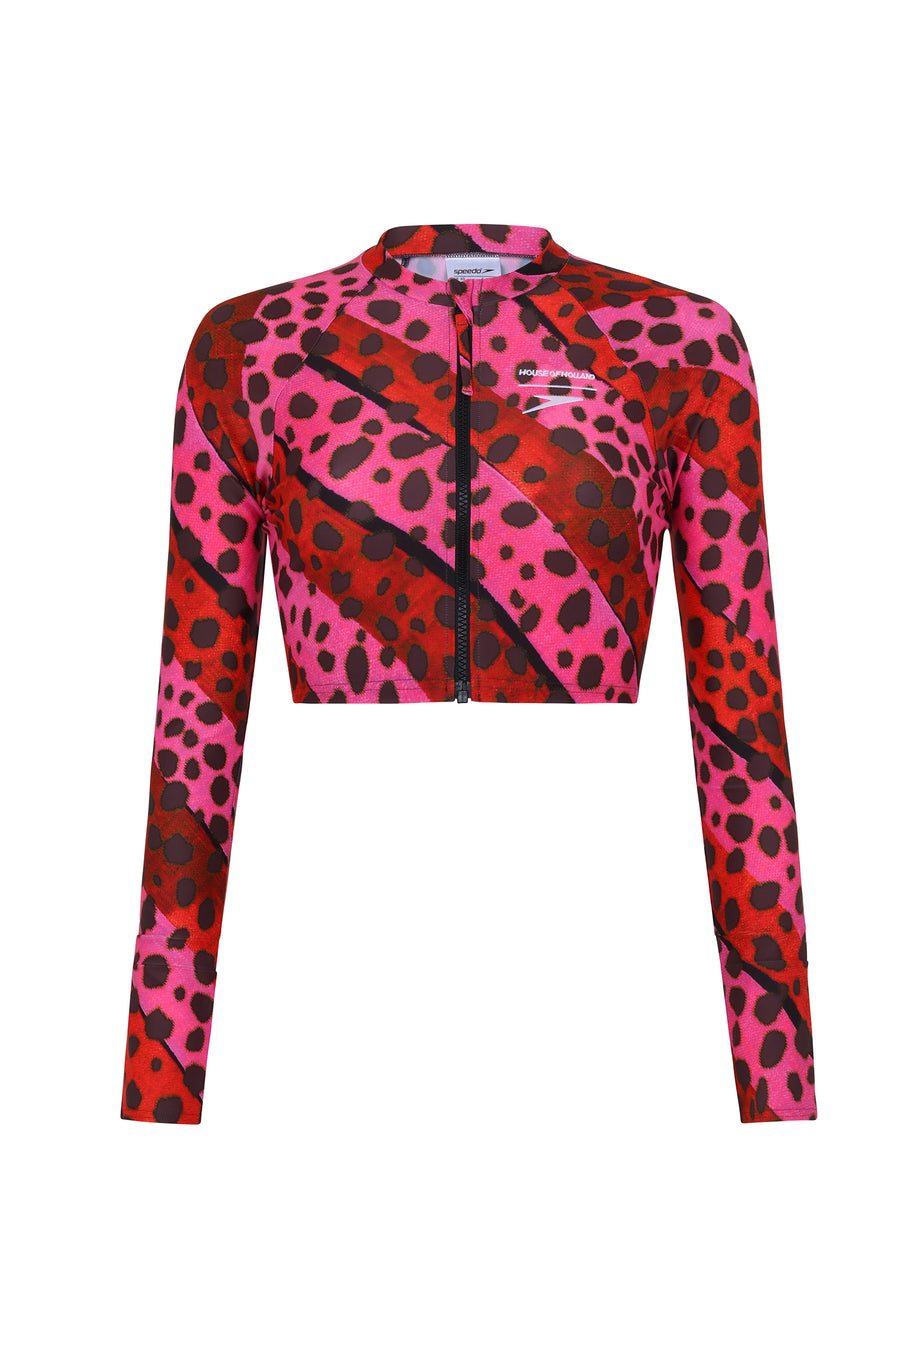 HOH X Speedo Bright Cheetah Stripe Rash Top